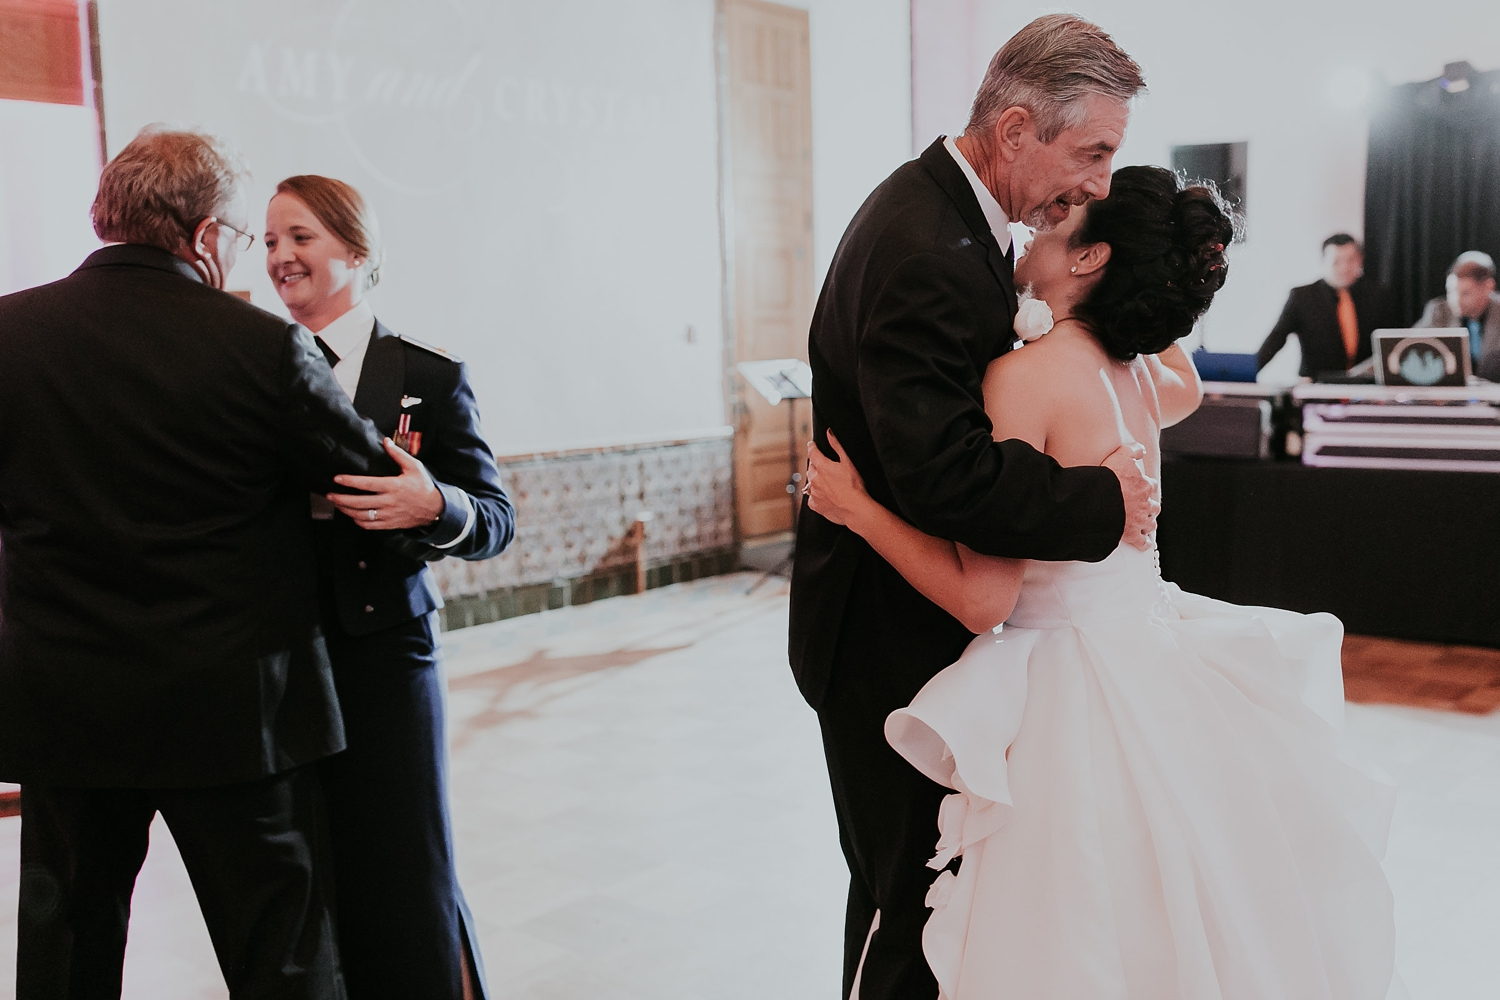 Alicia+lucia+photography+-+albuquerque+wedding+photographer+-+santa+fe+wedding+photography+-+new+mexico+wedding+photographer+-+los+poblanos+wedding+-+los+poblanos+fall+wedding+-+los+poblanos+october+wedding_0113.jpg